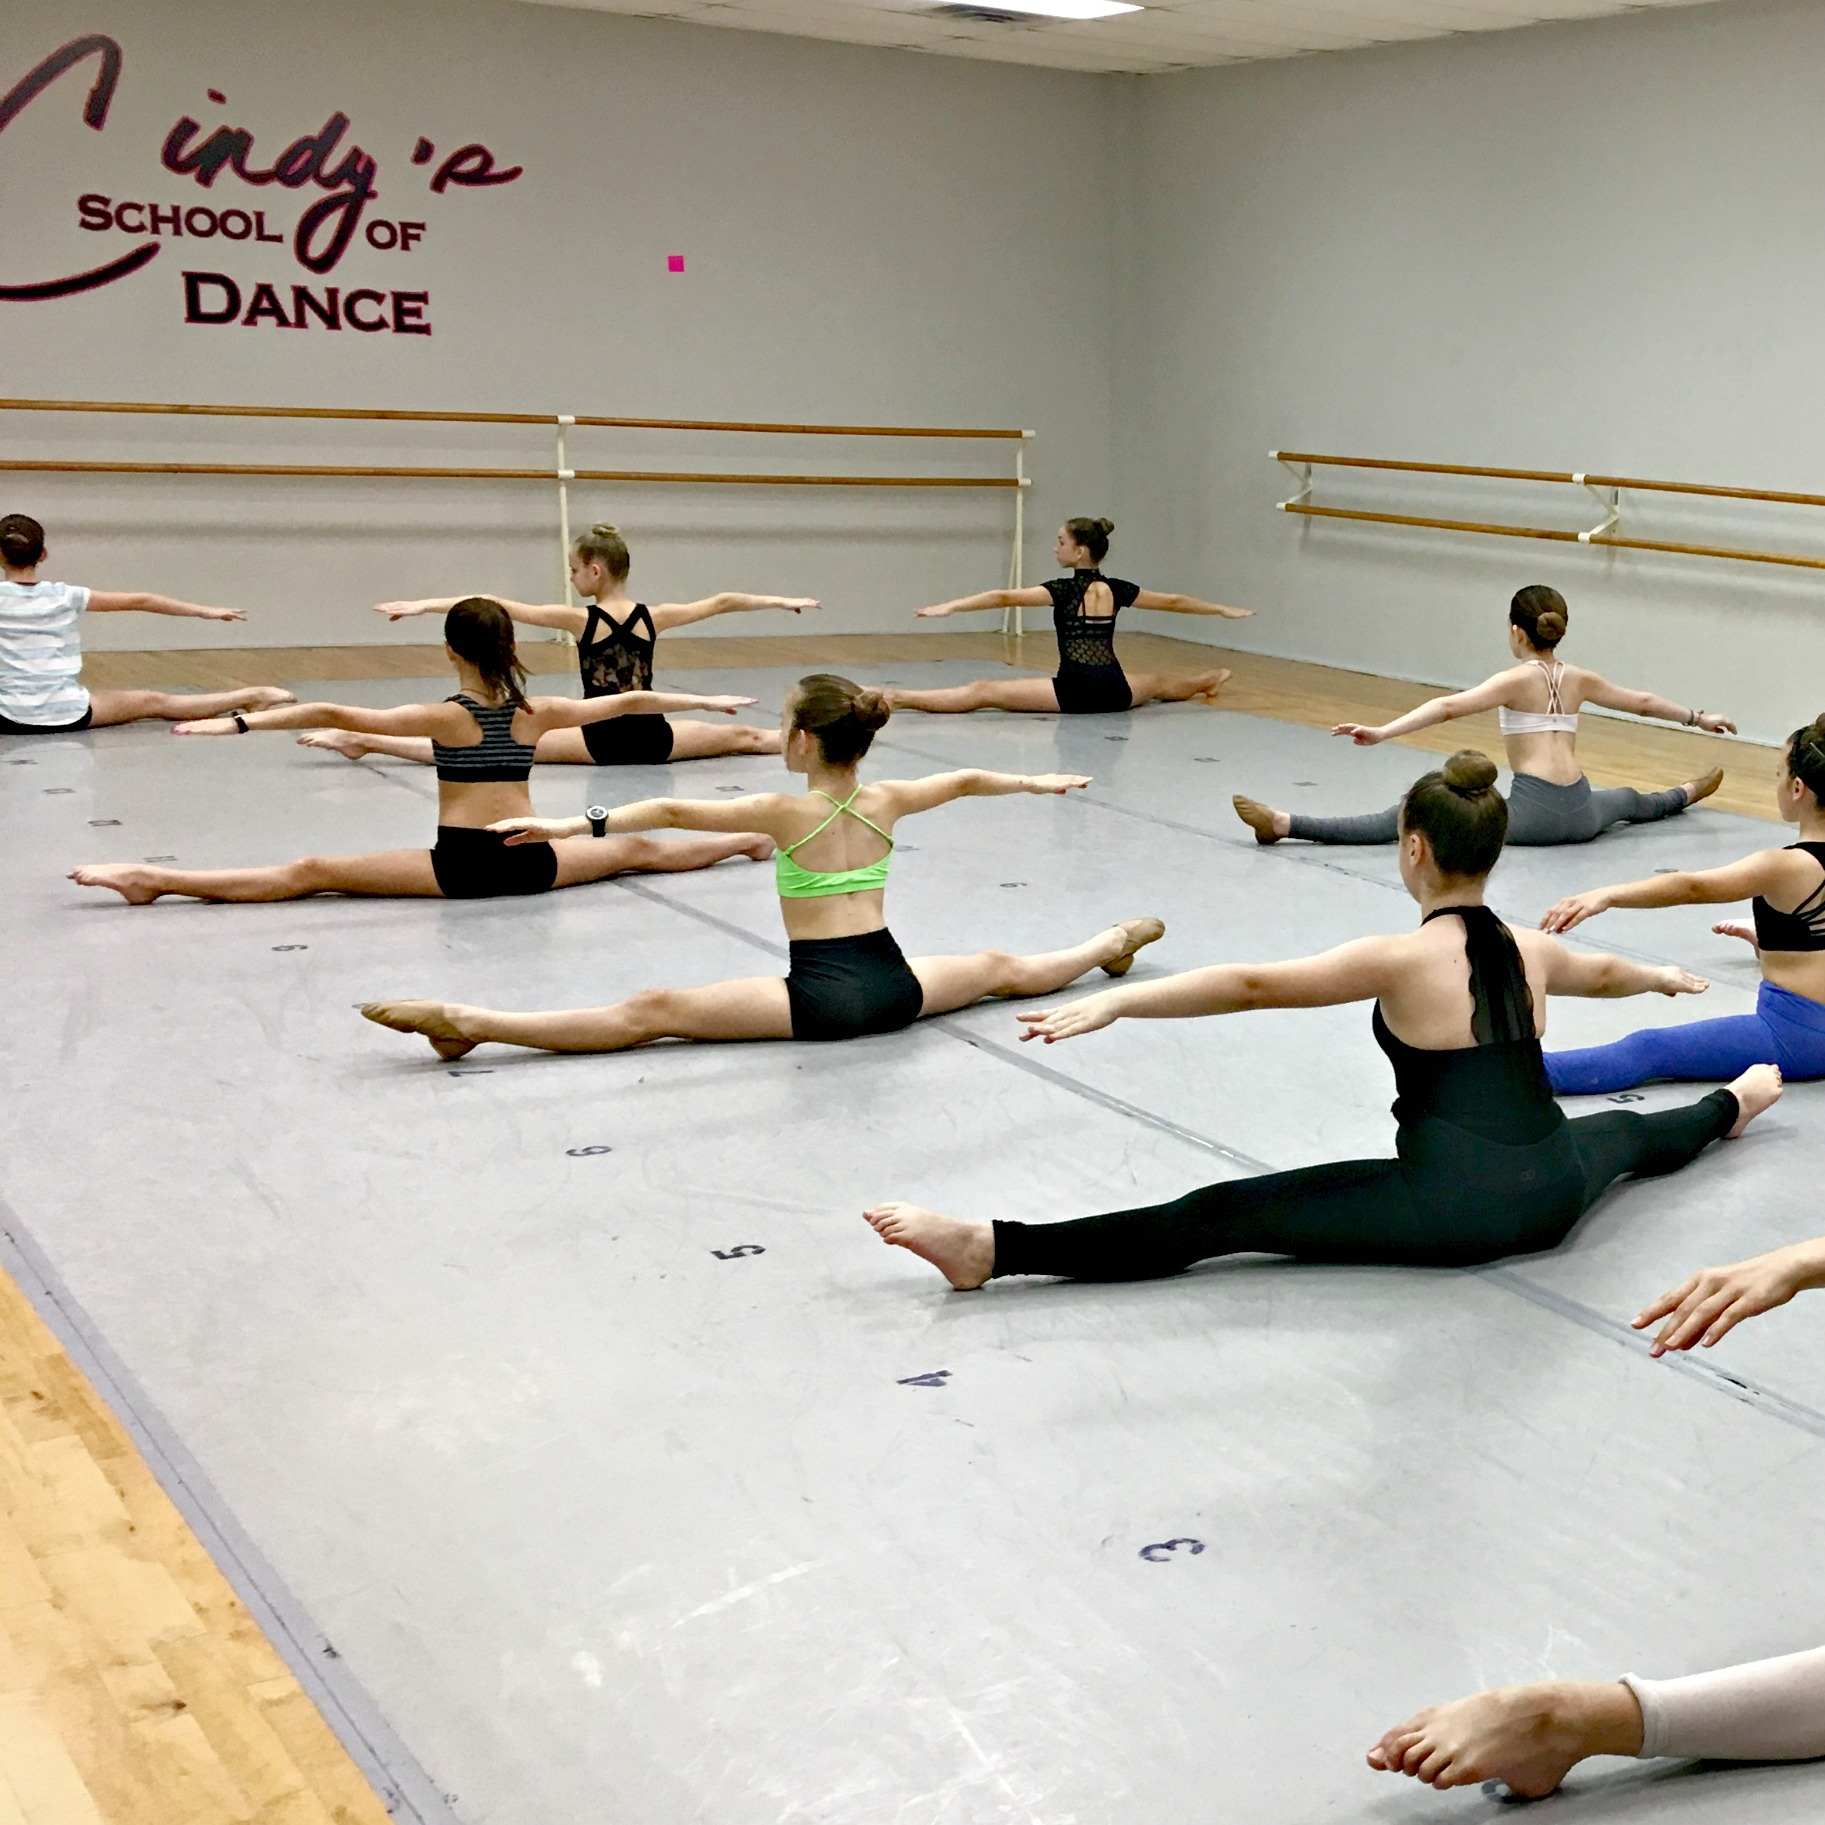 Dancers warm-up prior to class.